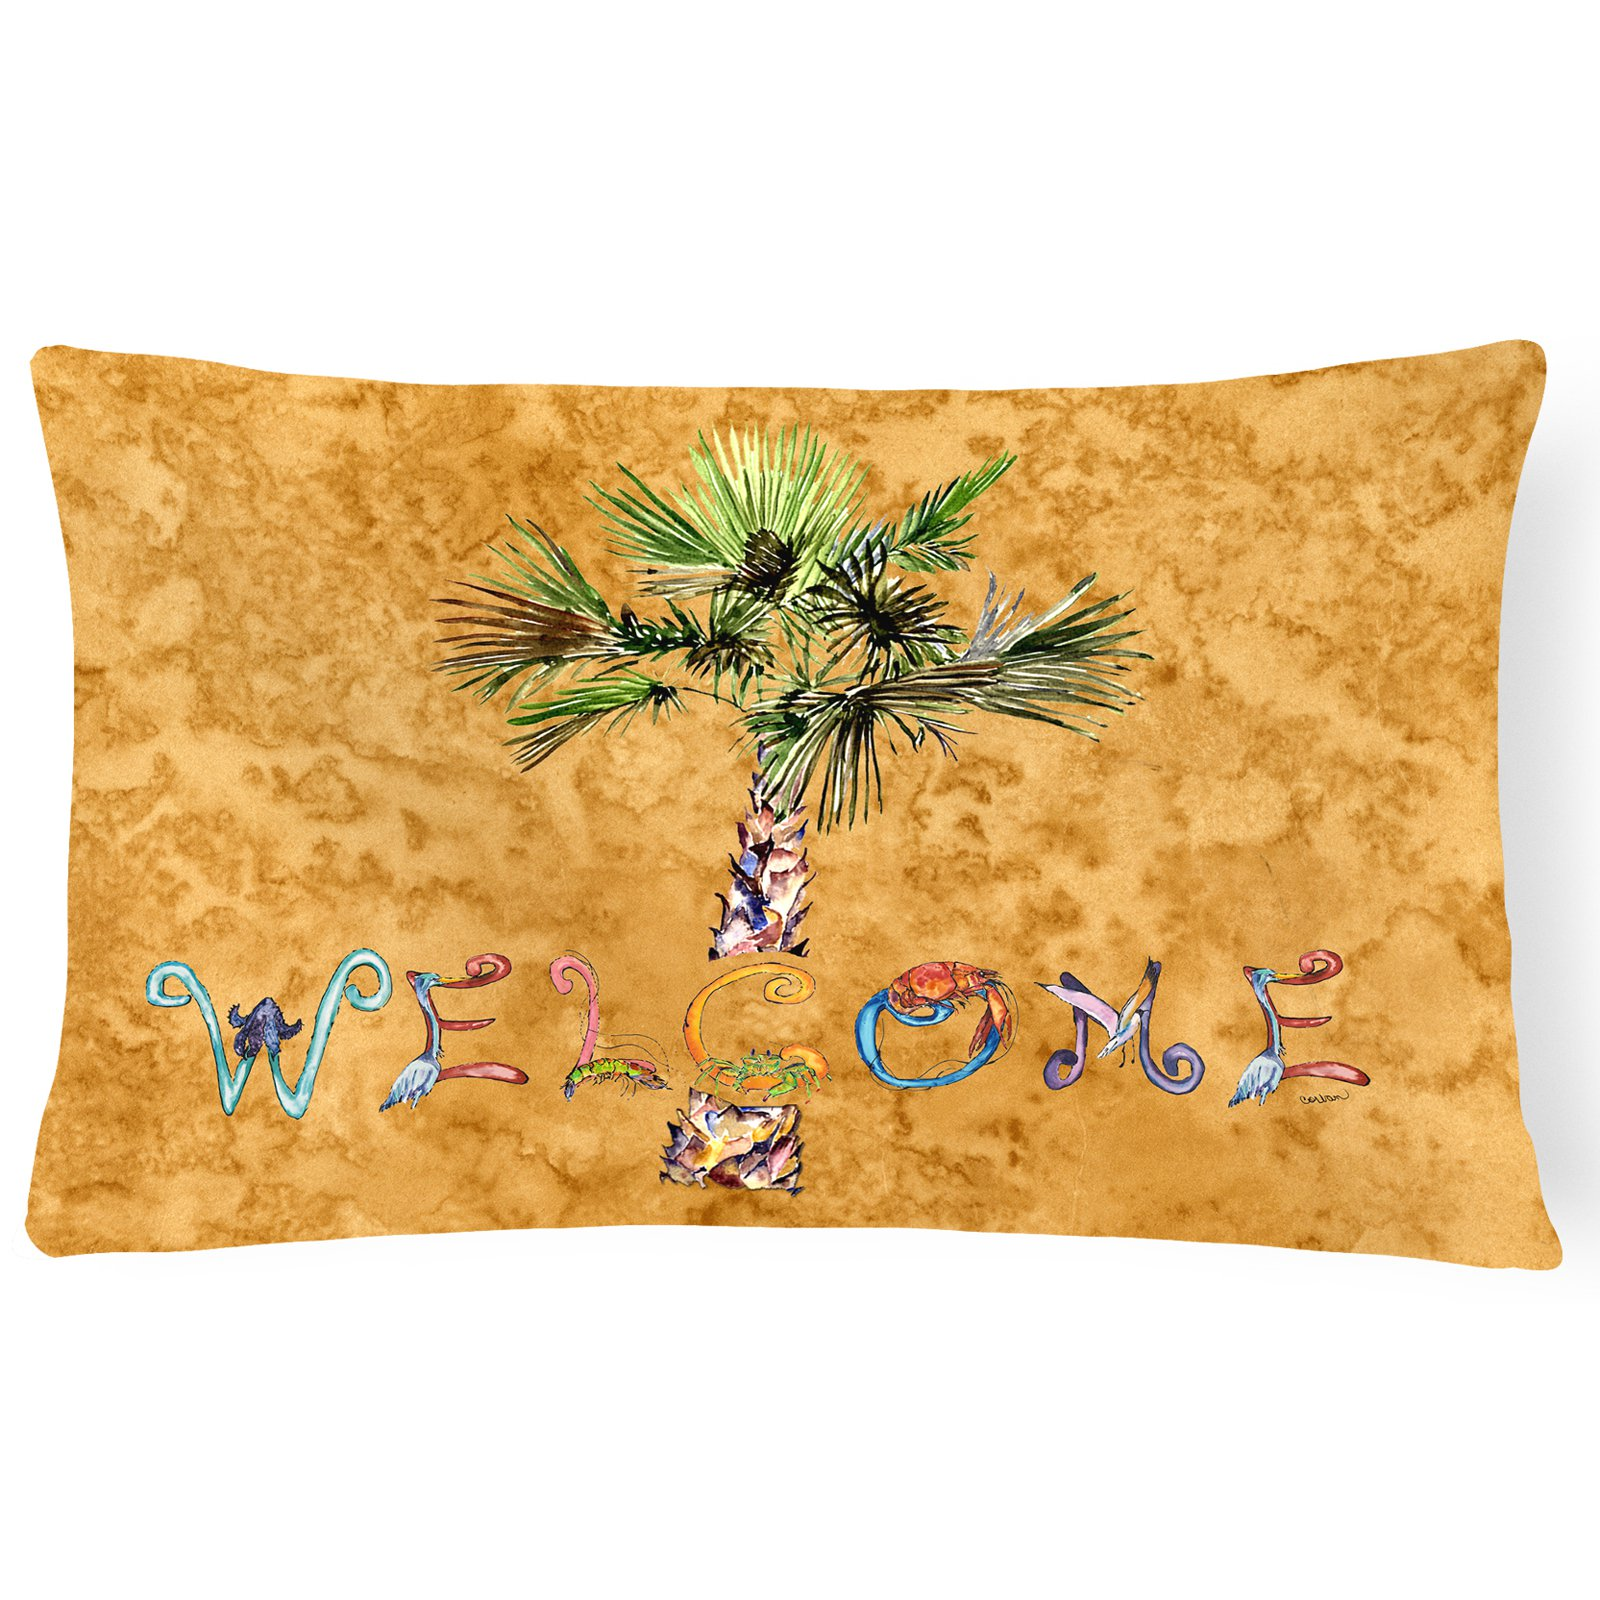 Welcome Palm Tree on Teal Canvas Fabric Decorative Pillow